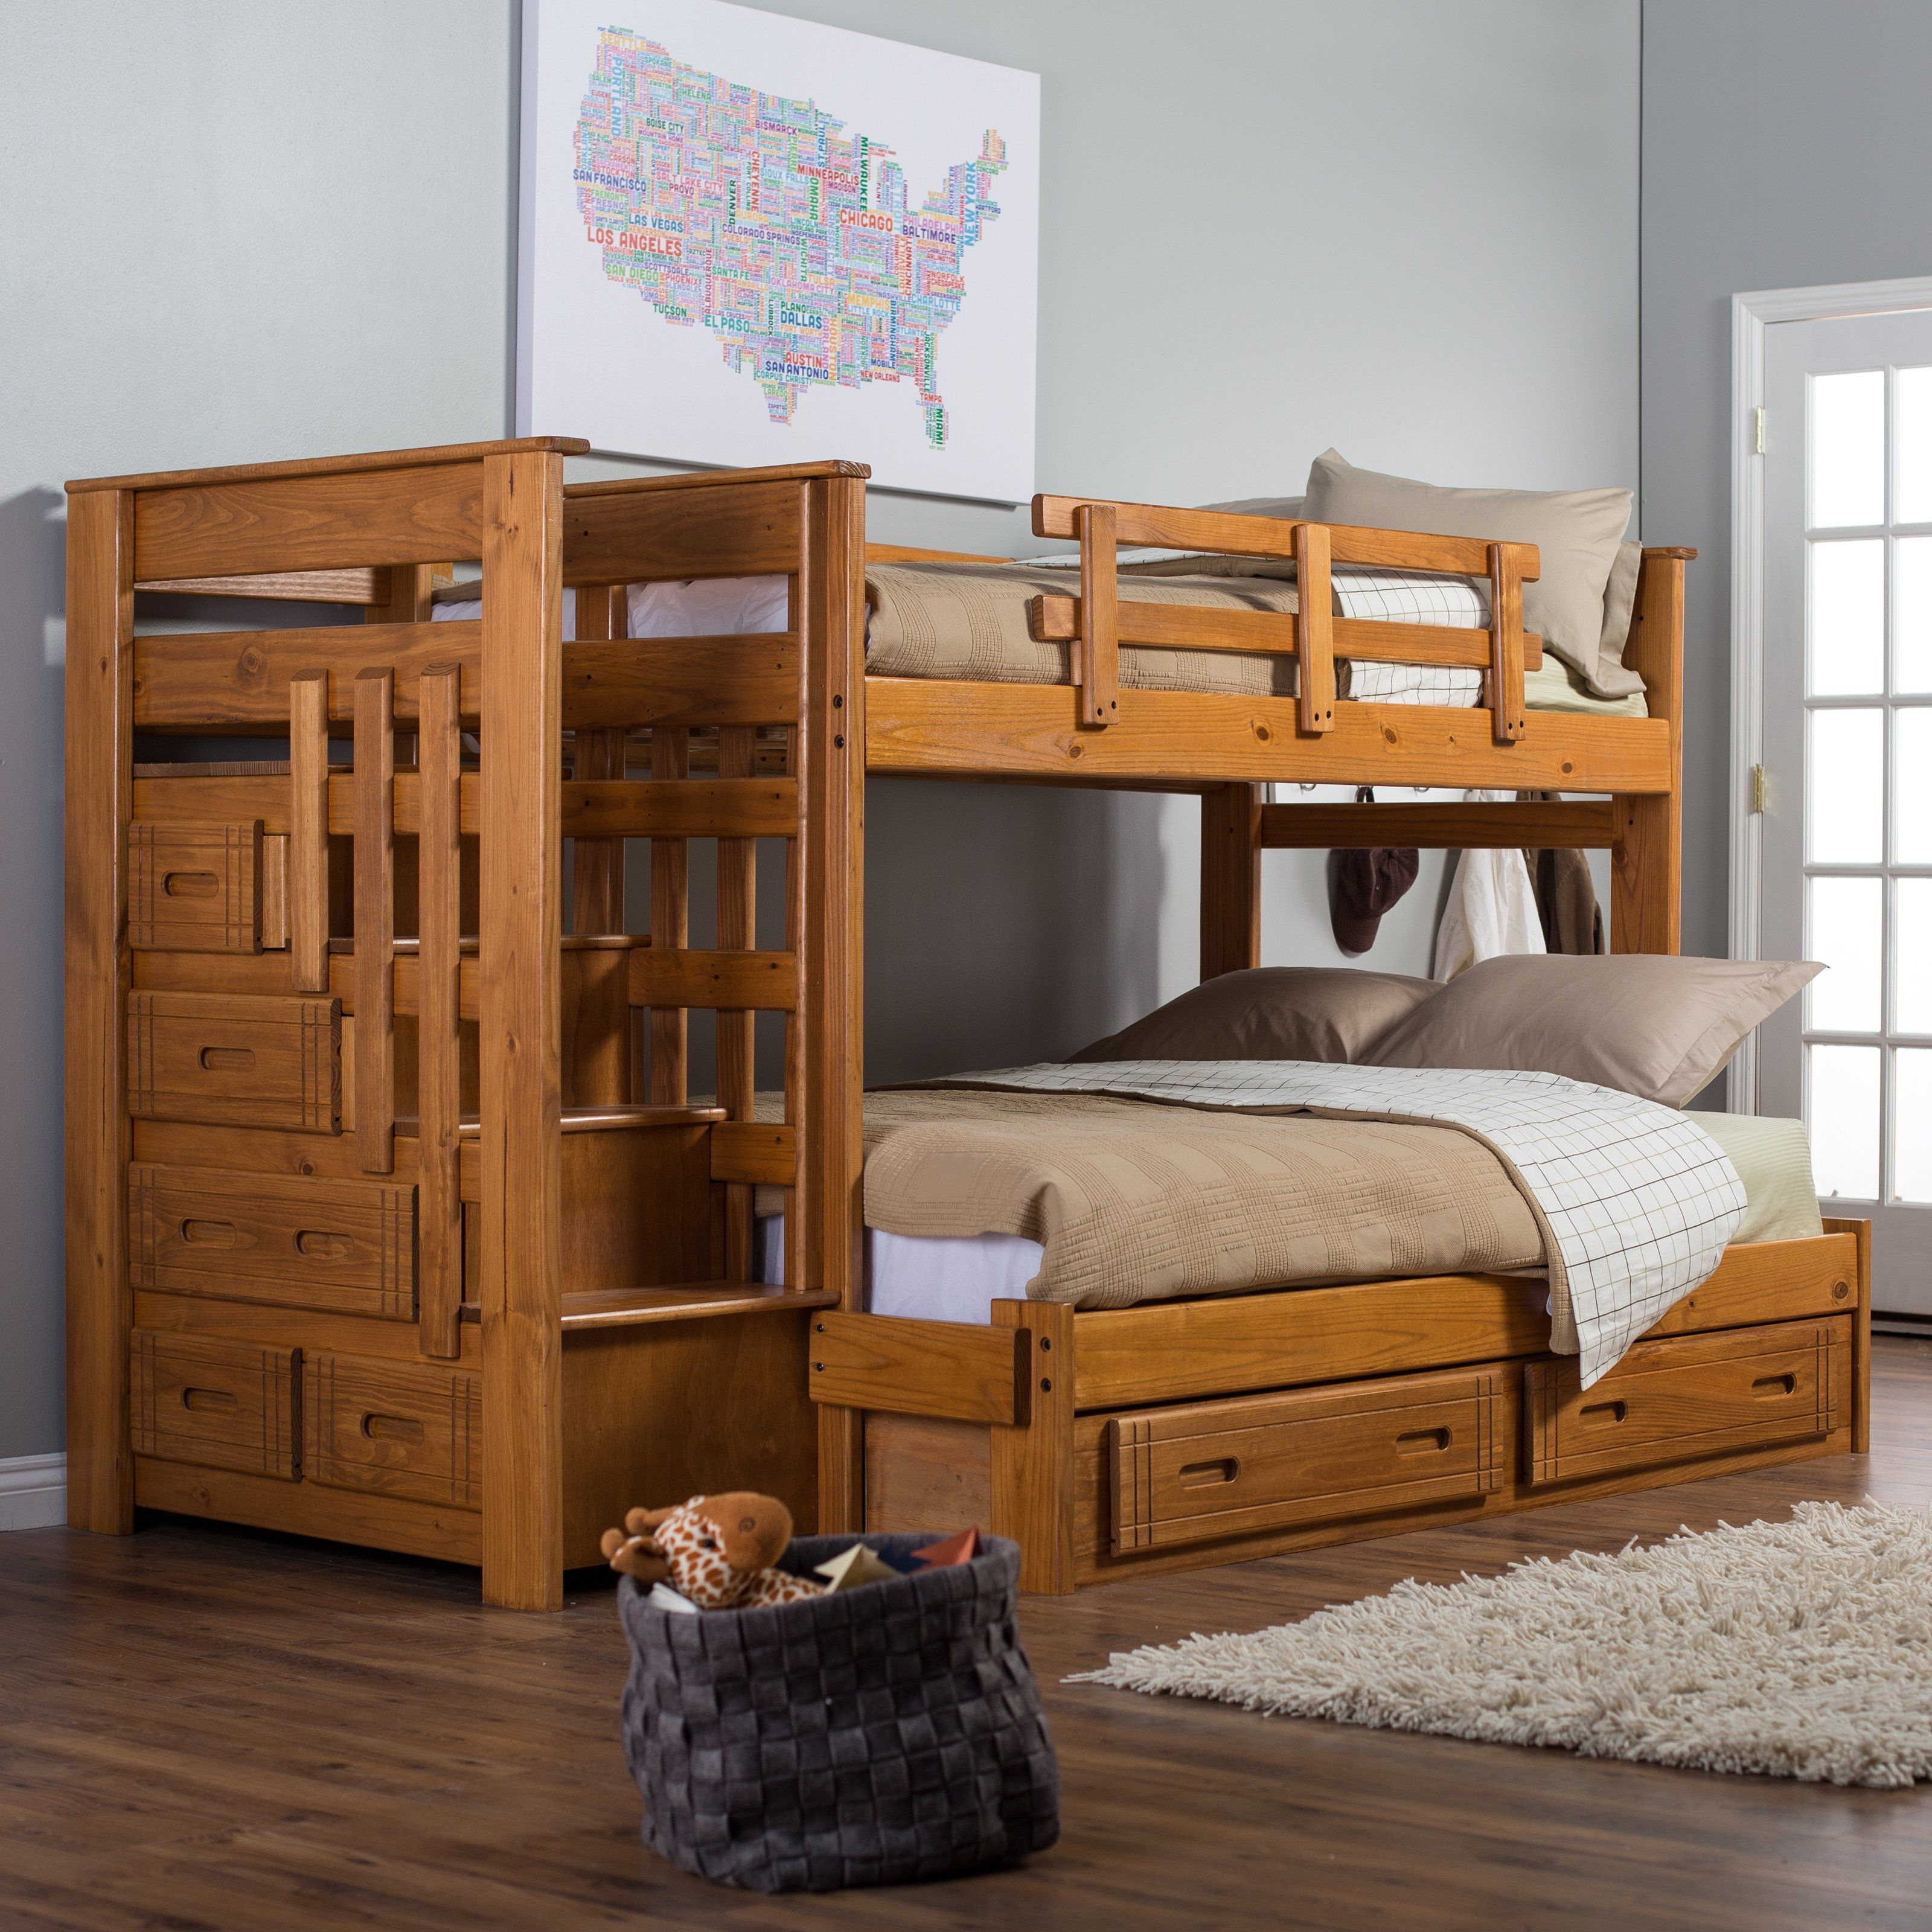 Under loft bed storage ideas  Stairway II Twin over Full Bunk Bed with Stairs  Kids Storage Beds